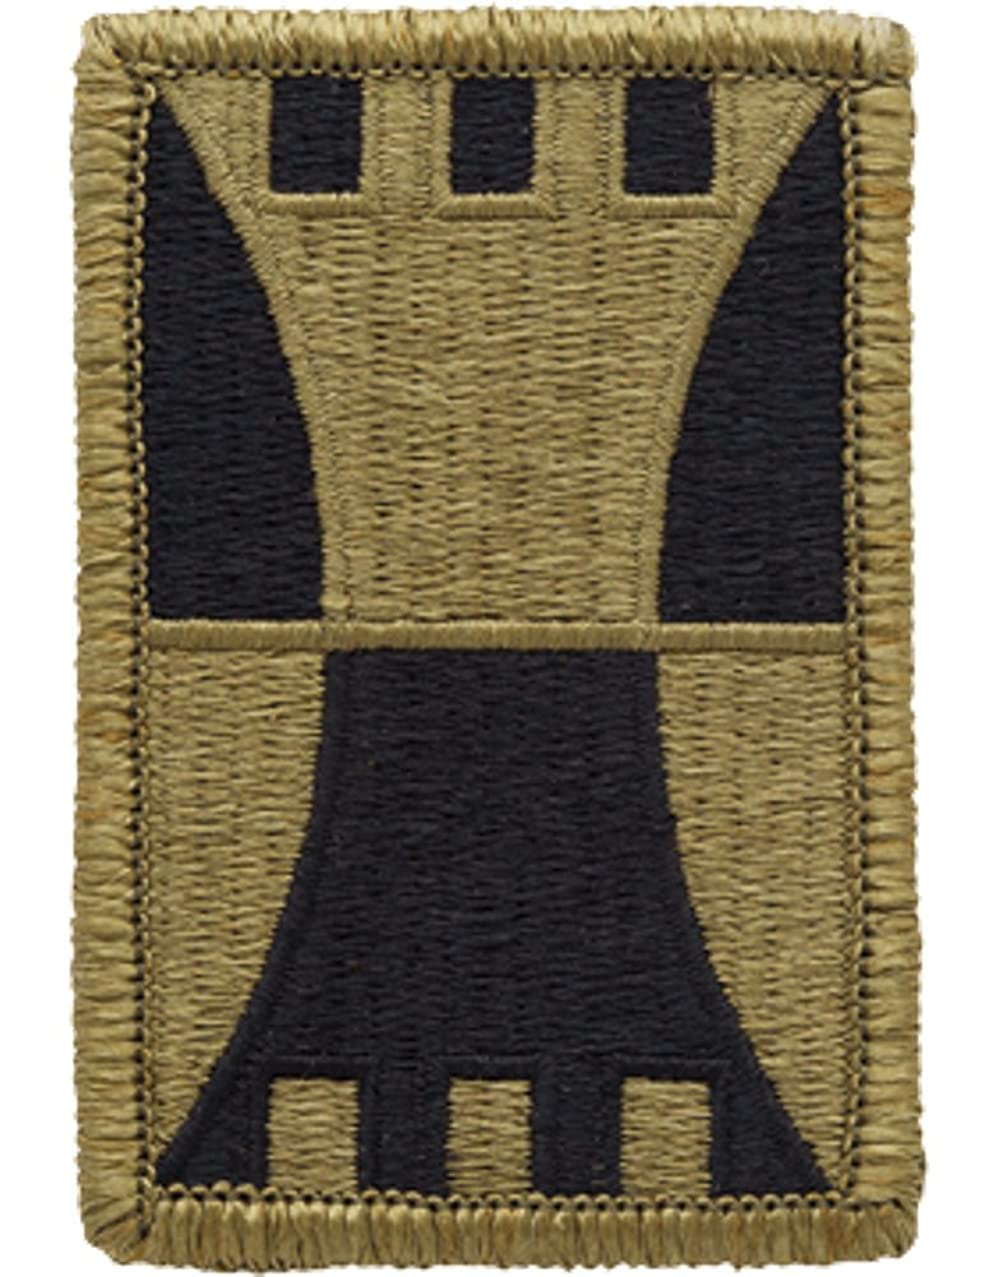 416th Engineer Command OCP Multicam Patch